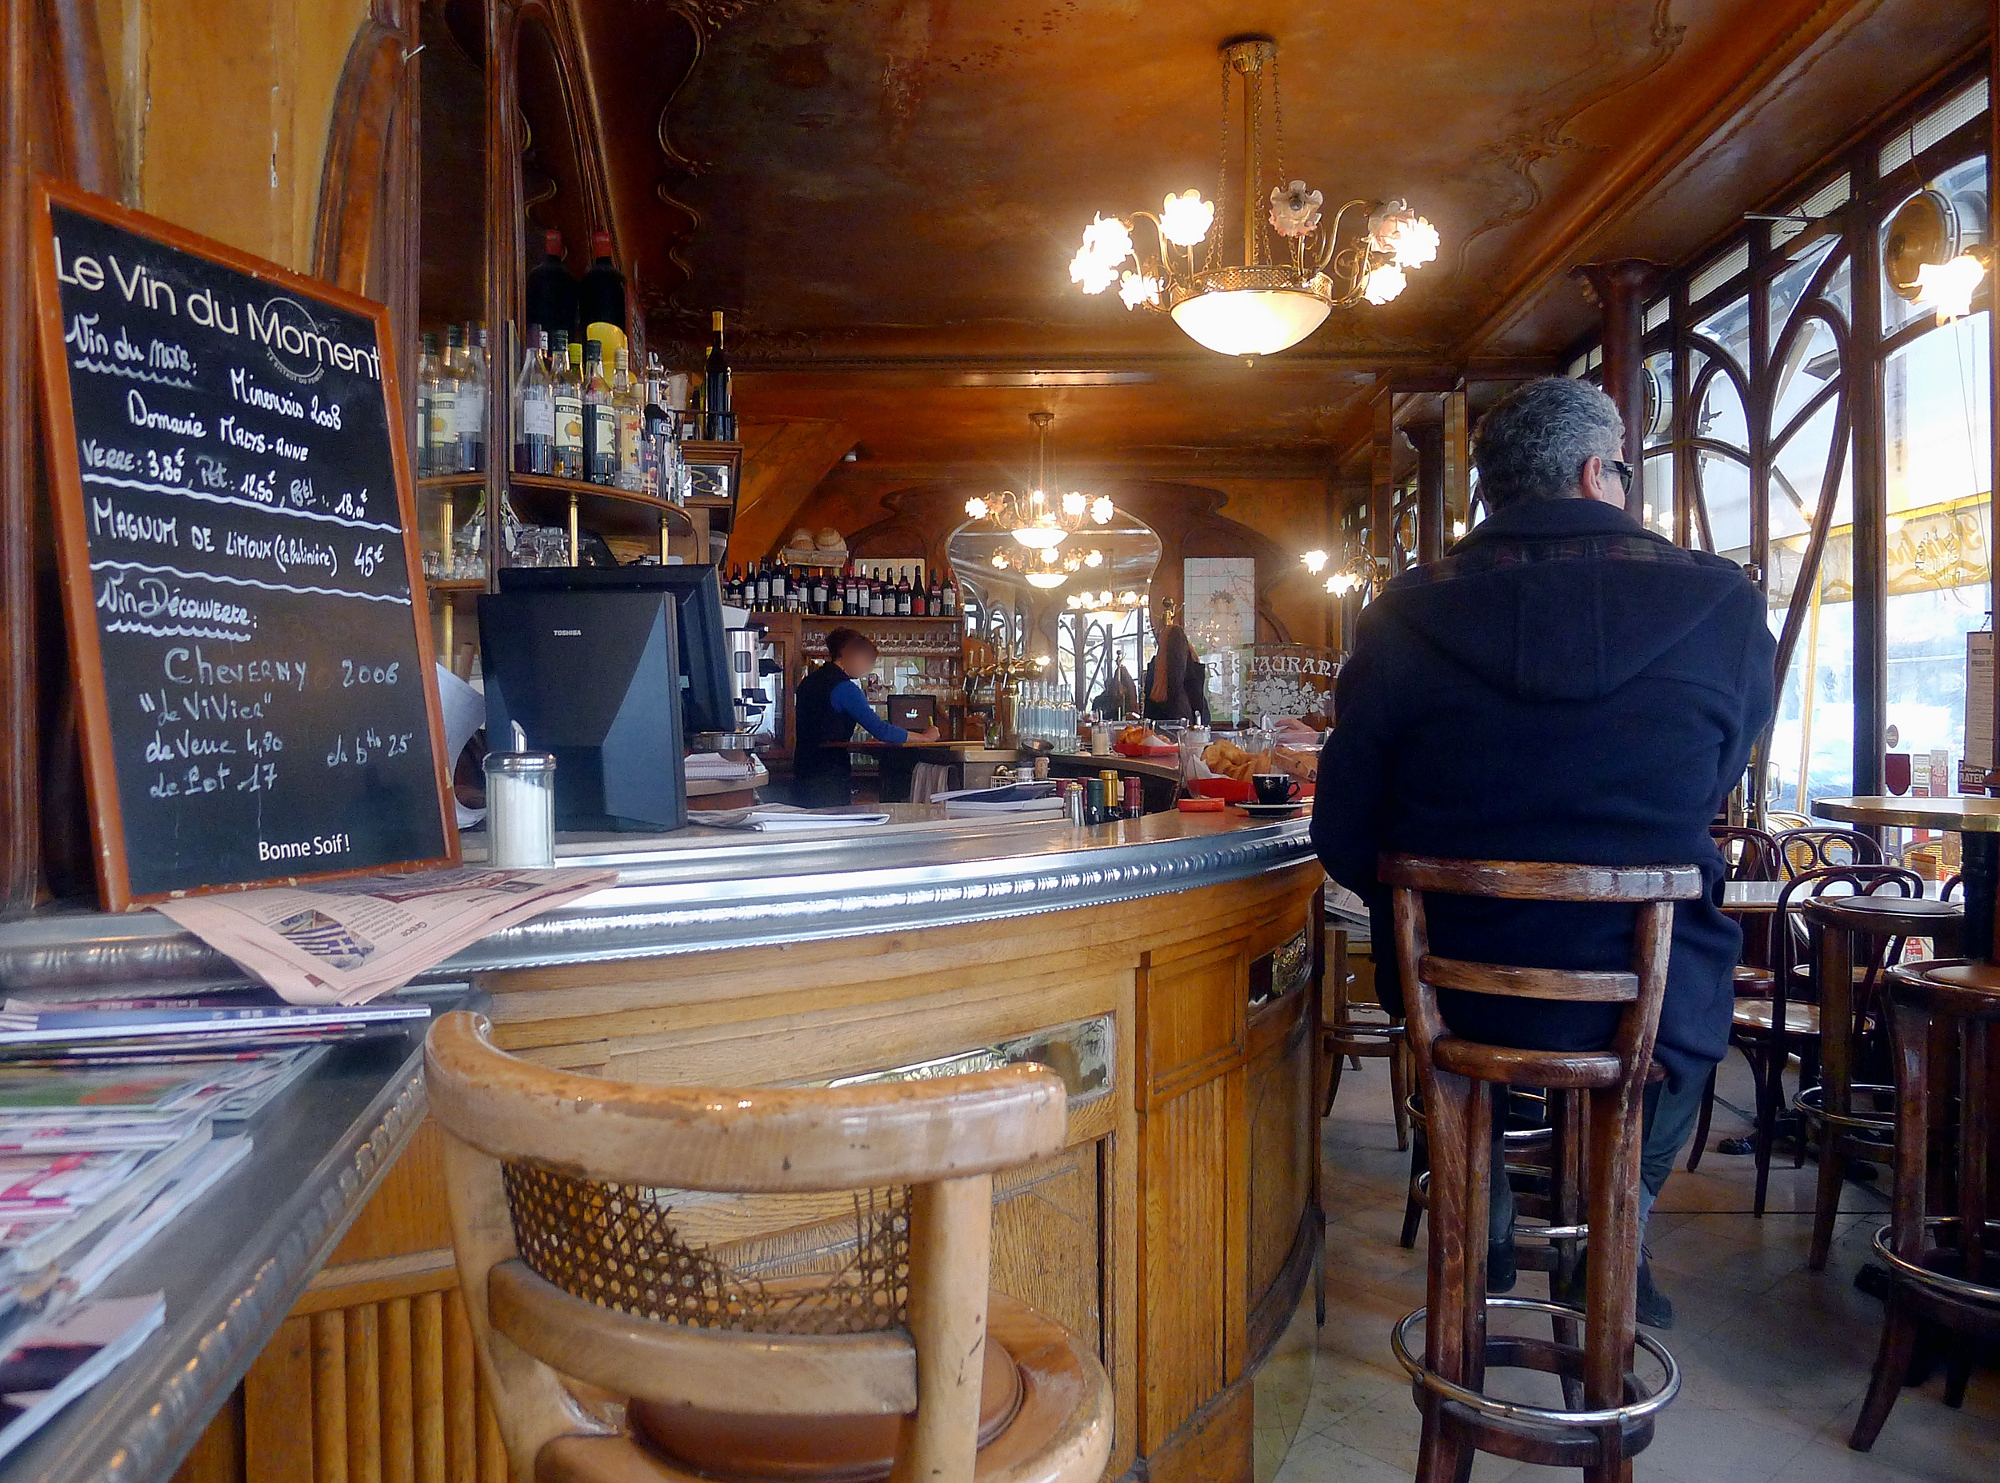 File:P1070735 Paris XI Bistrot du peintre rwk.JPG - Wikimedia Commons